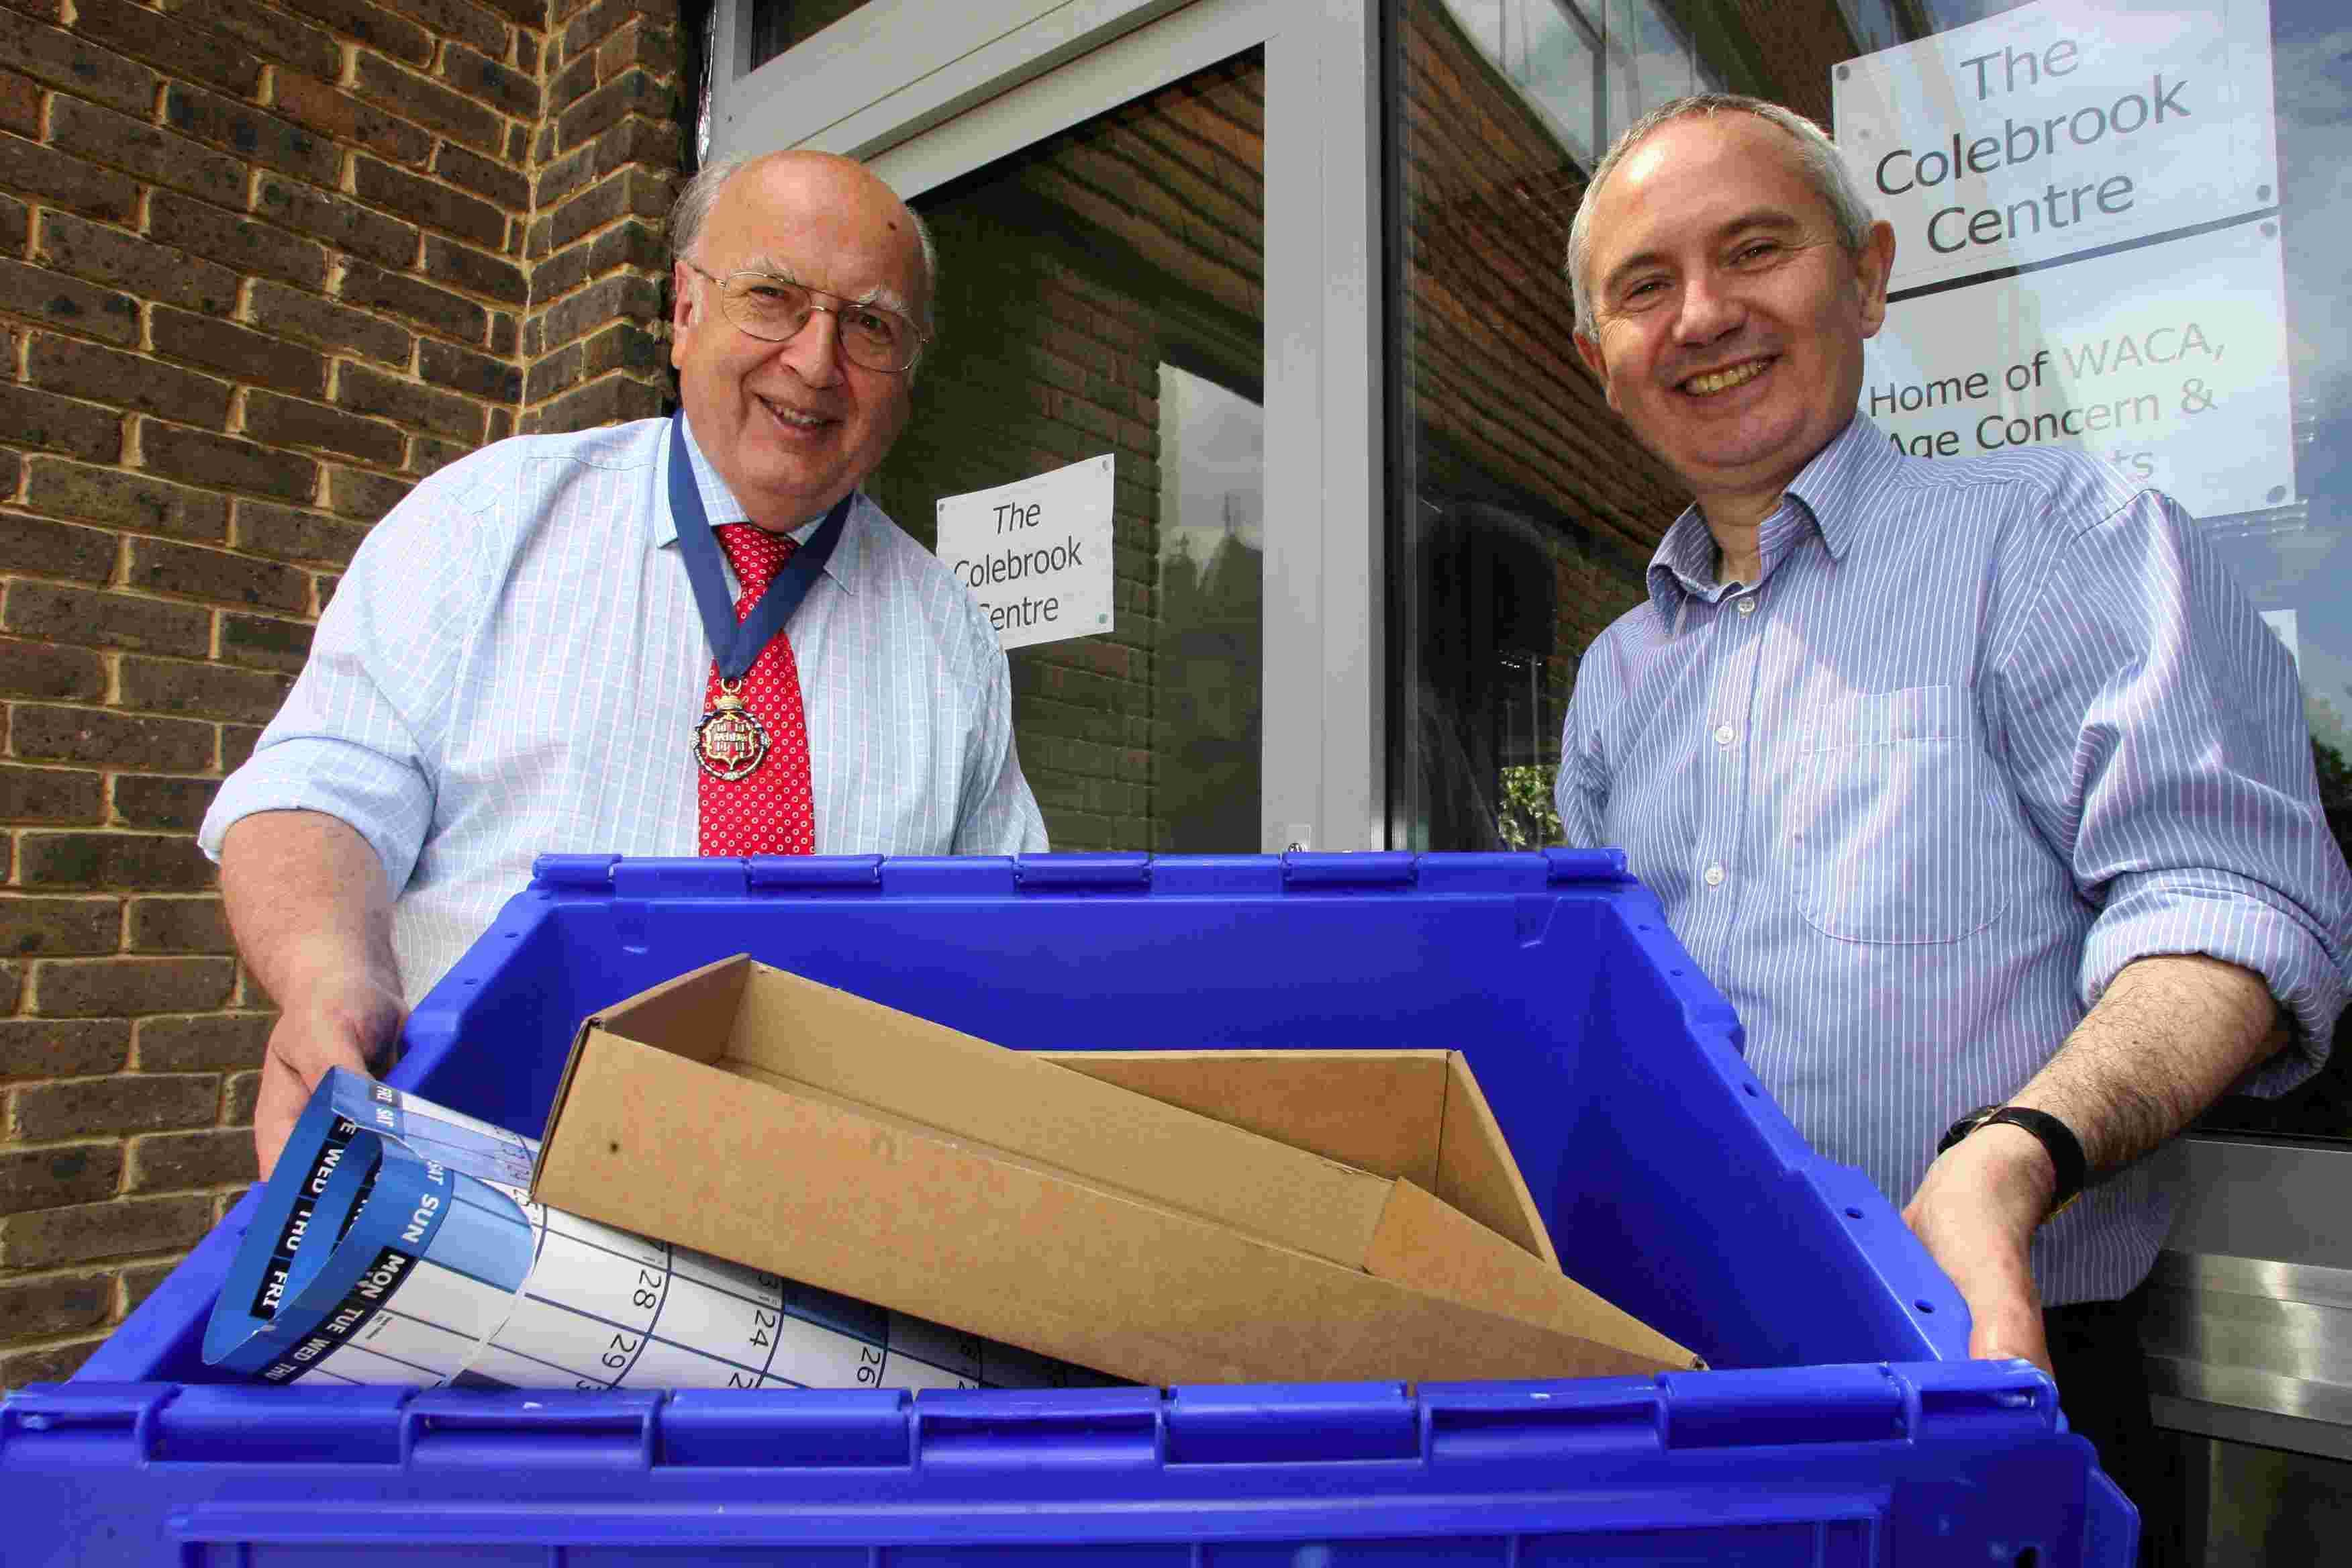 Mayor of Winchester, Cllr Barry Lipscomb, left, welcoming WACA chief executive Paul Williams to the Colebrook Centre in 2011